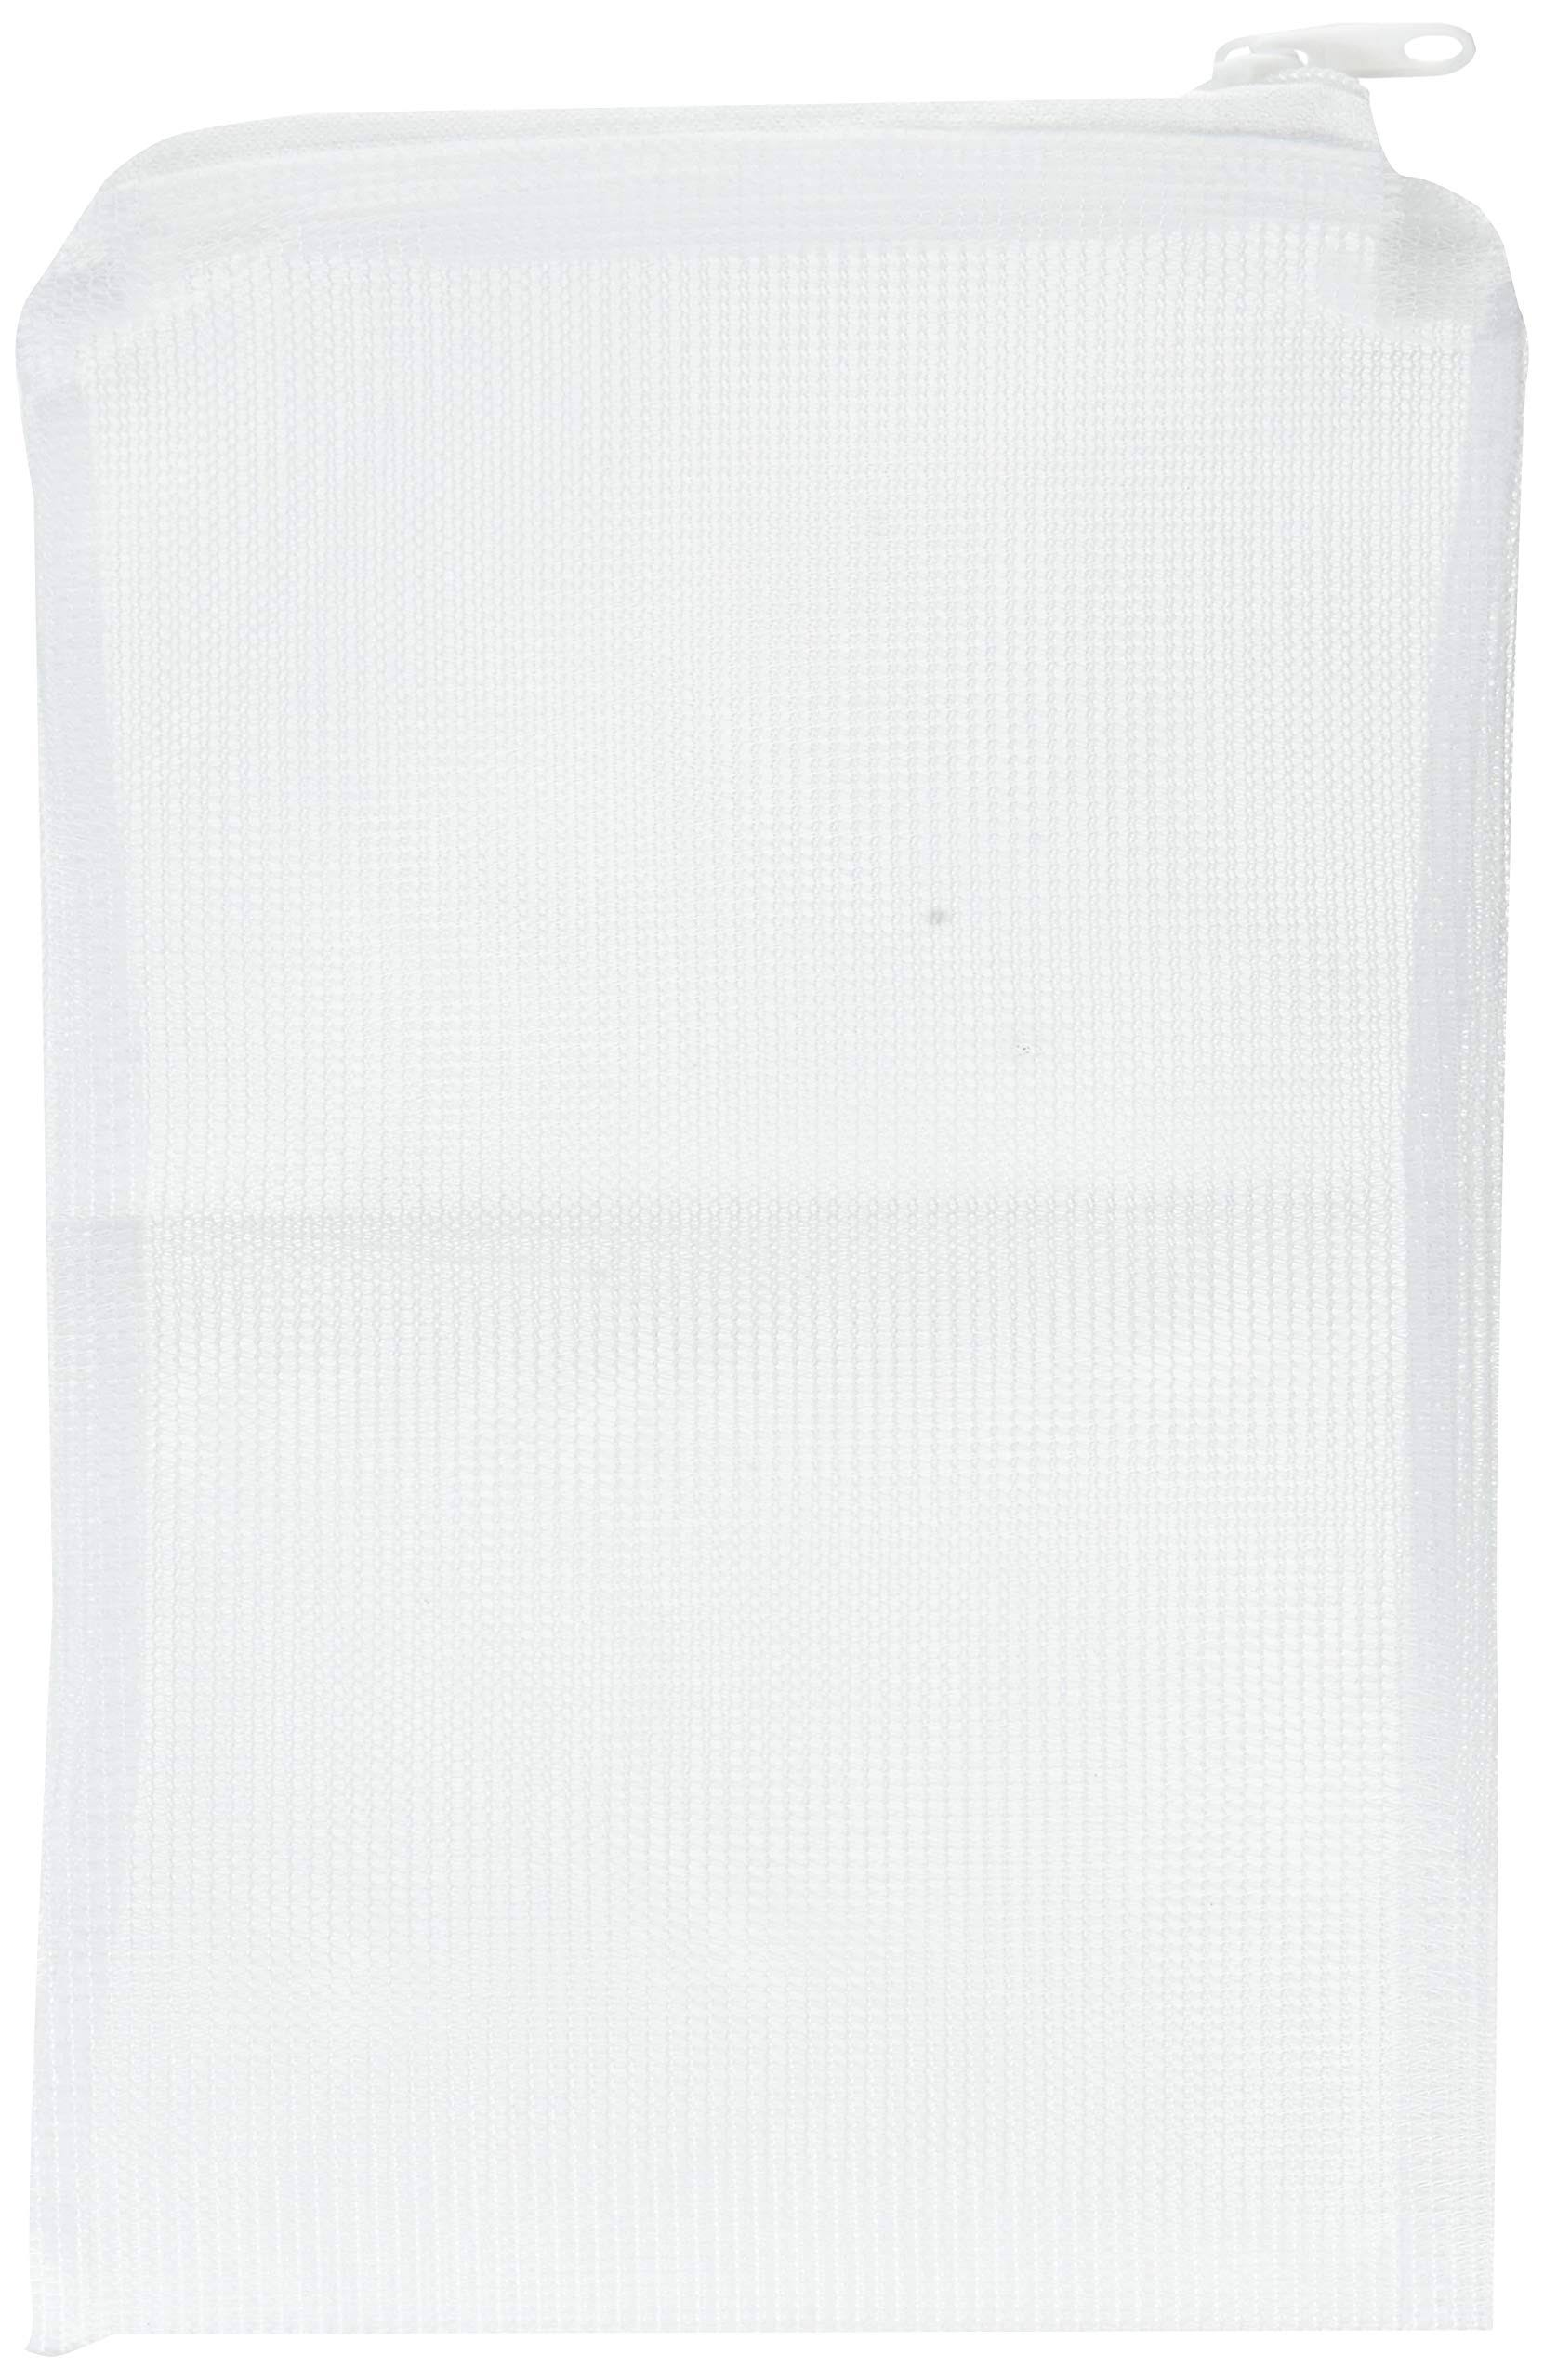 Seachem Zip Bag Filter Media Mesh - 12.5 x 5.5 in